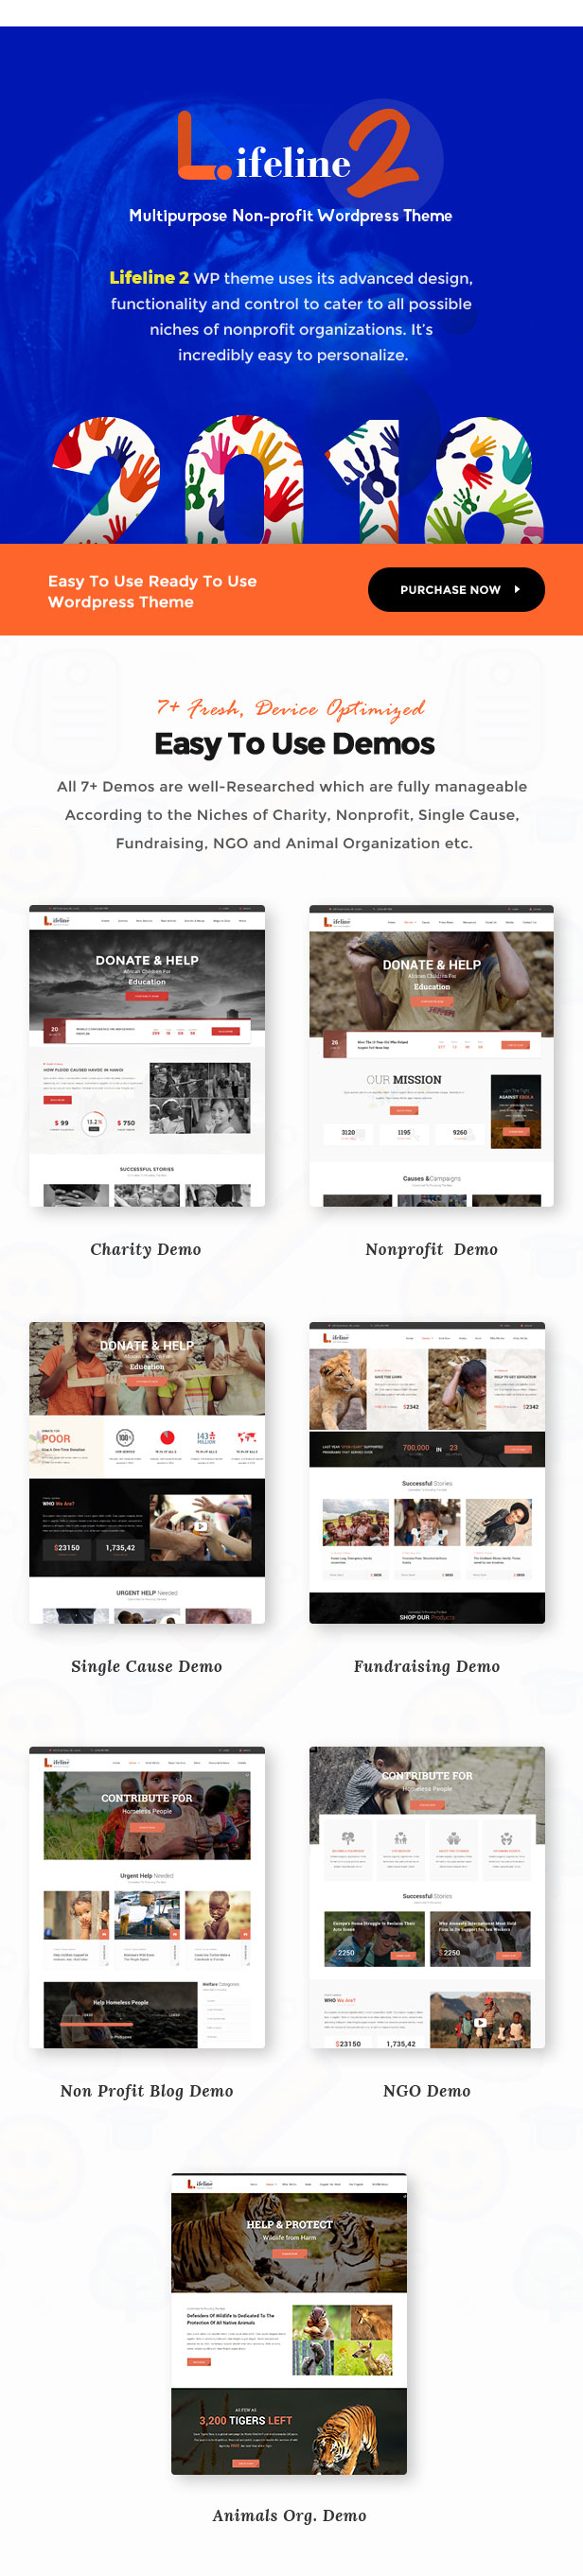 Lifeline 2 - An Ultimate Nonprofit WordPress Theme for Charity, Fundraising and NGO Organizations - 2